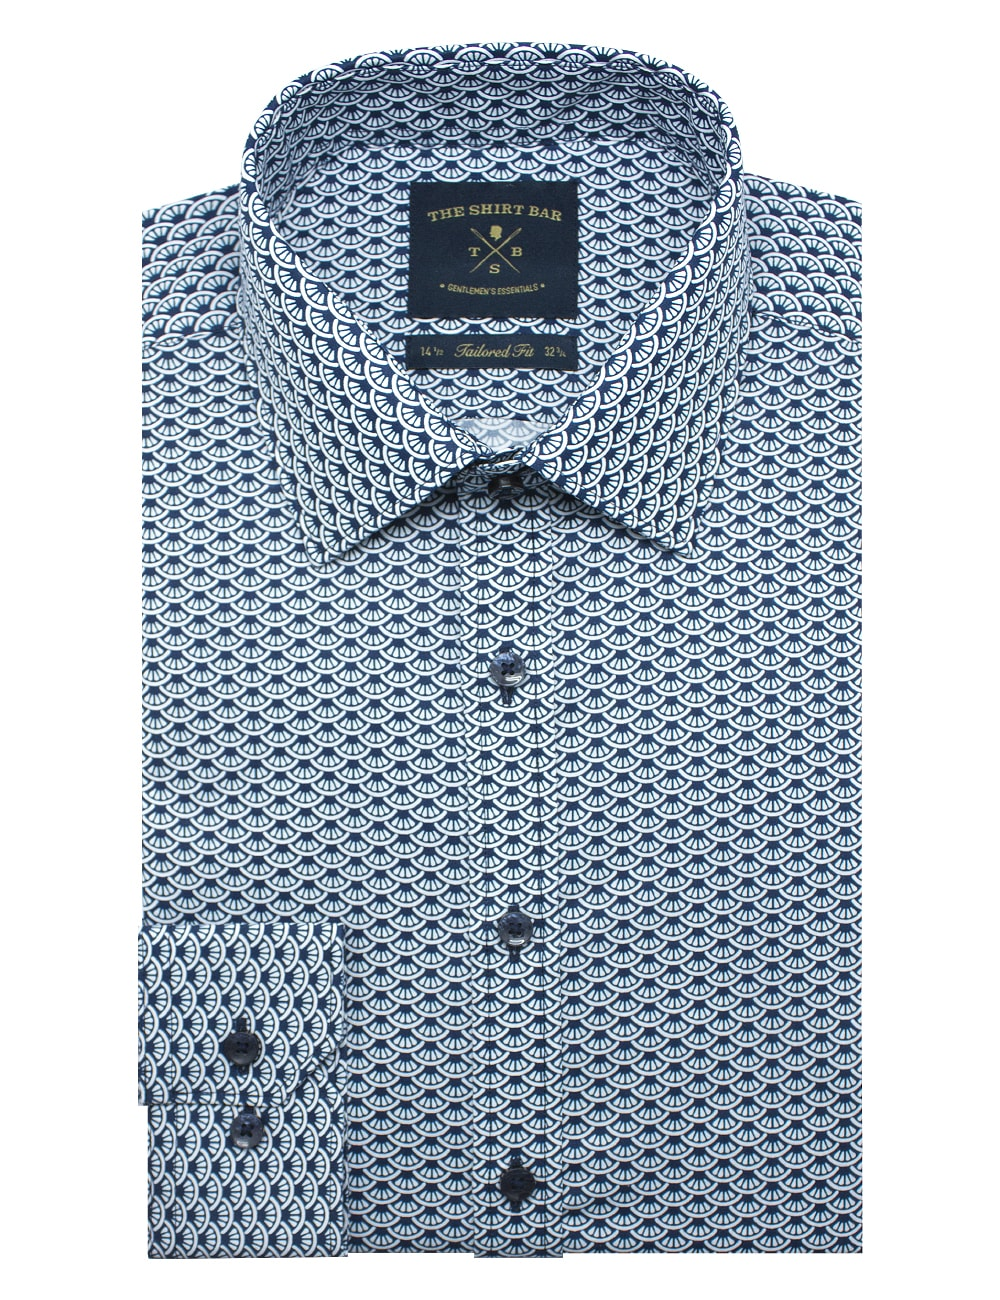 Blue Merlion SG Inspired Slim / Tailored Fit Long Sleeve Shirt - TF2A3.18